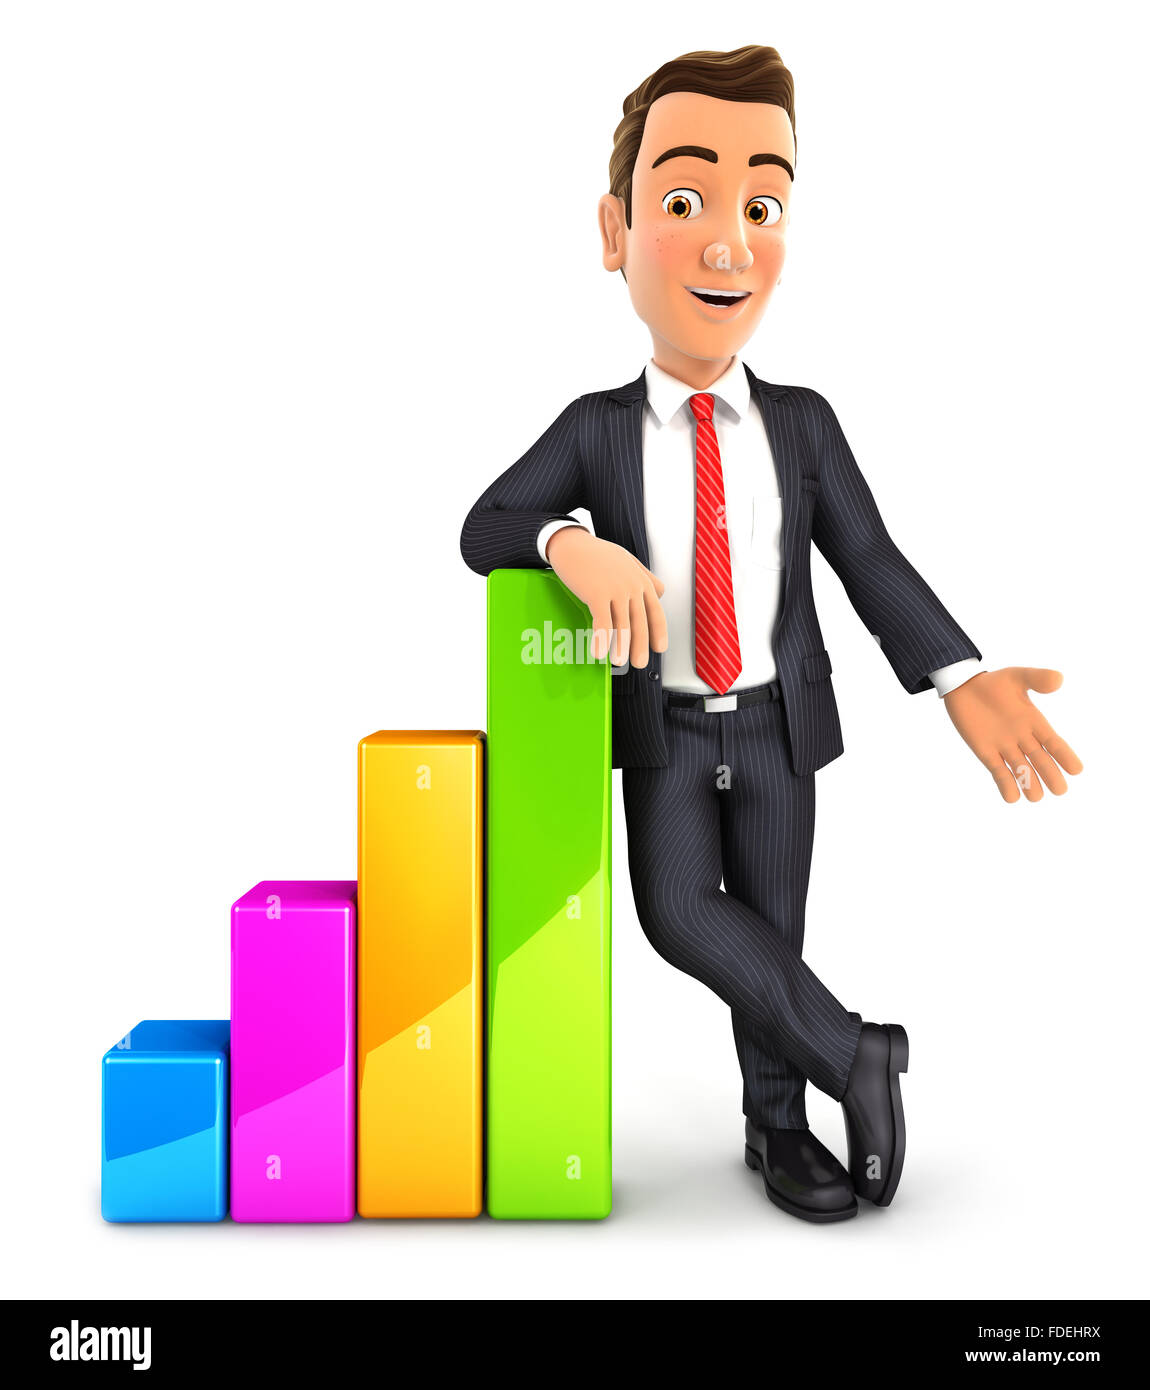 3d businessman leaning against bar chart, isolated white background Stock Photo